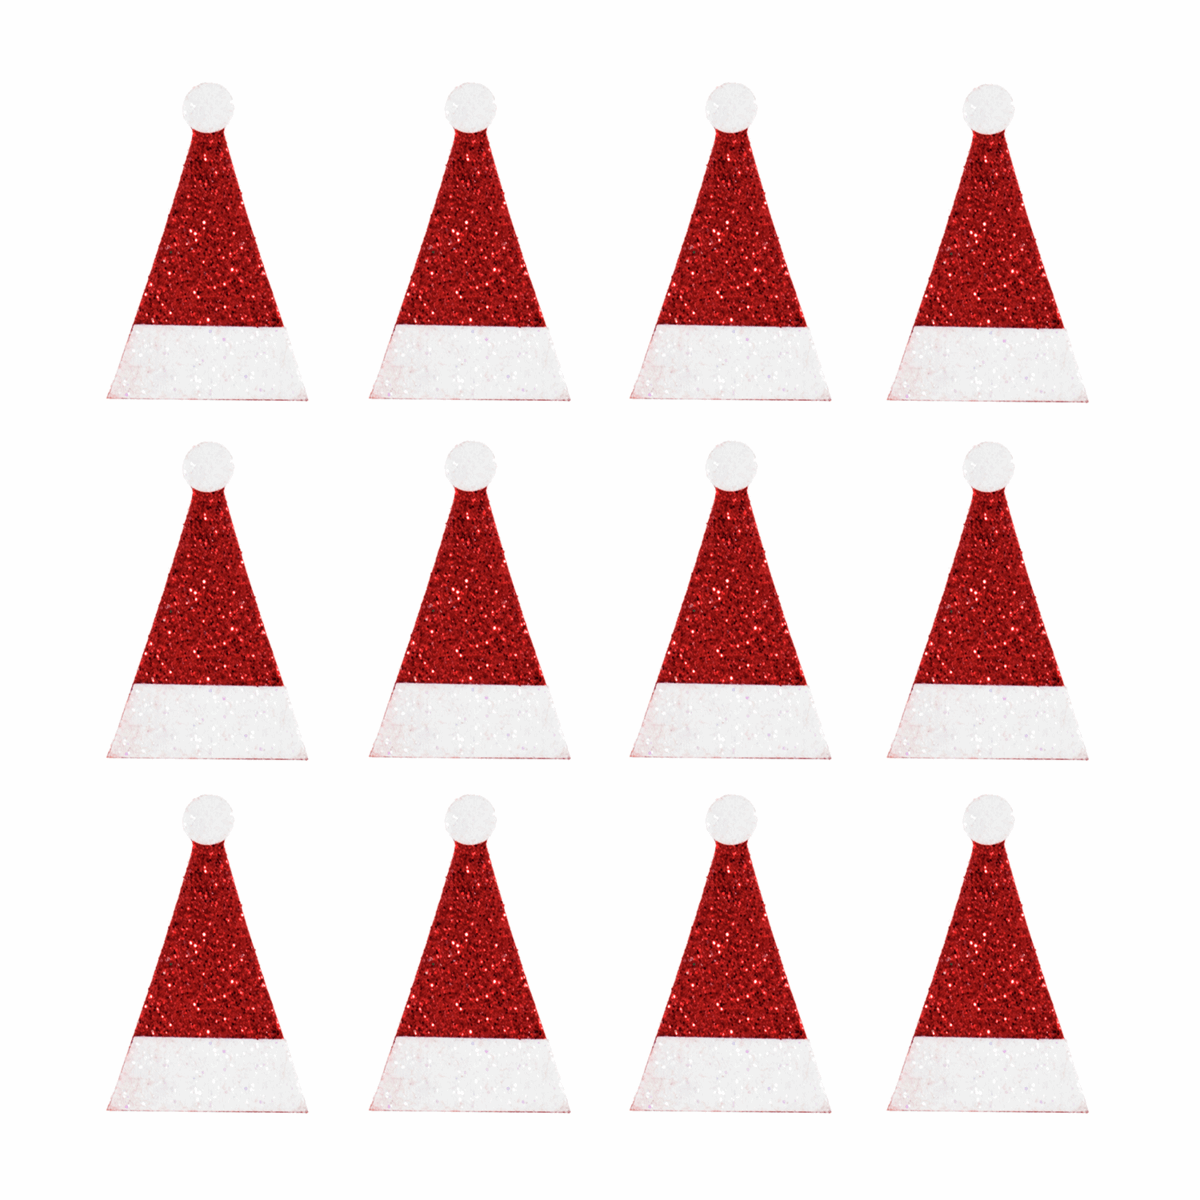 Picture of Craft Embellishments: Glitter Santa Hats: 12 Pieces